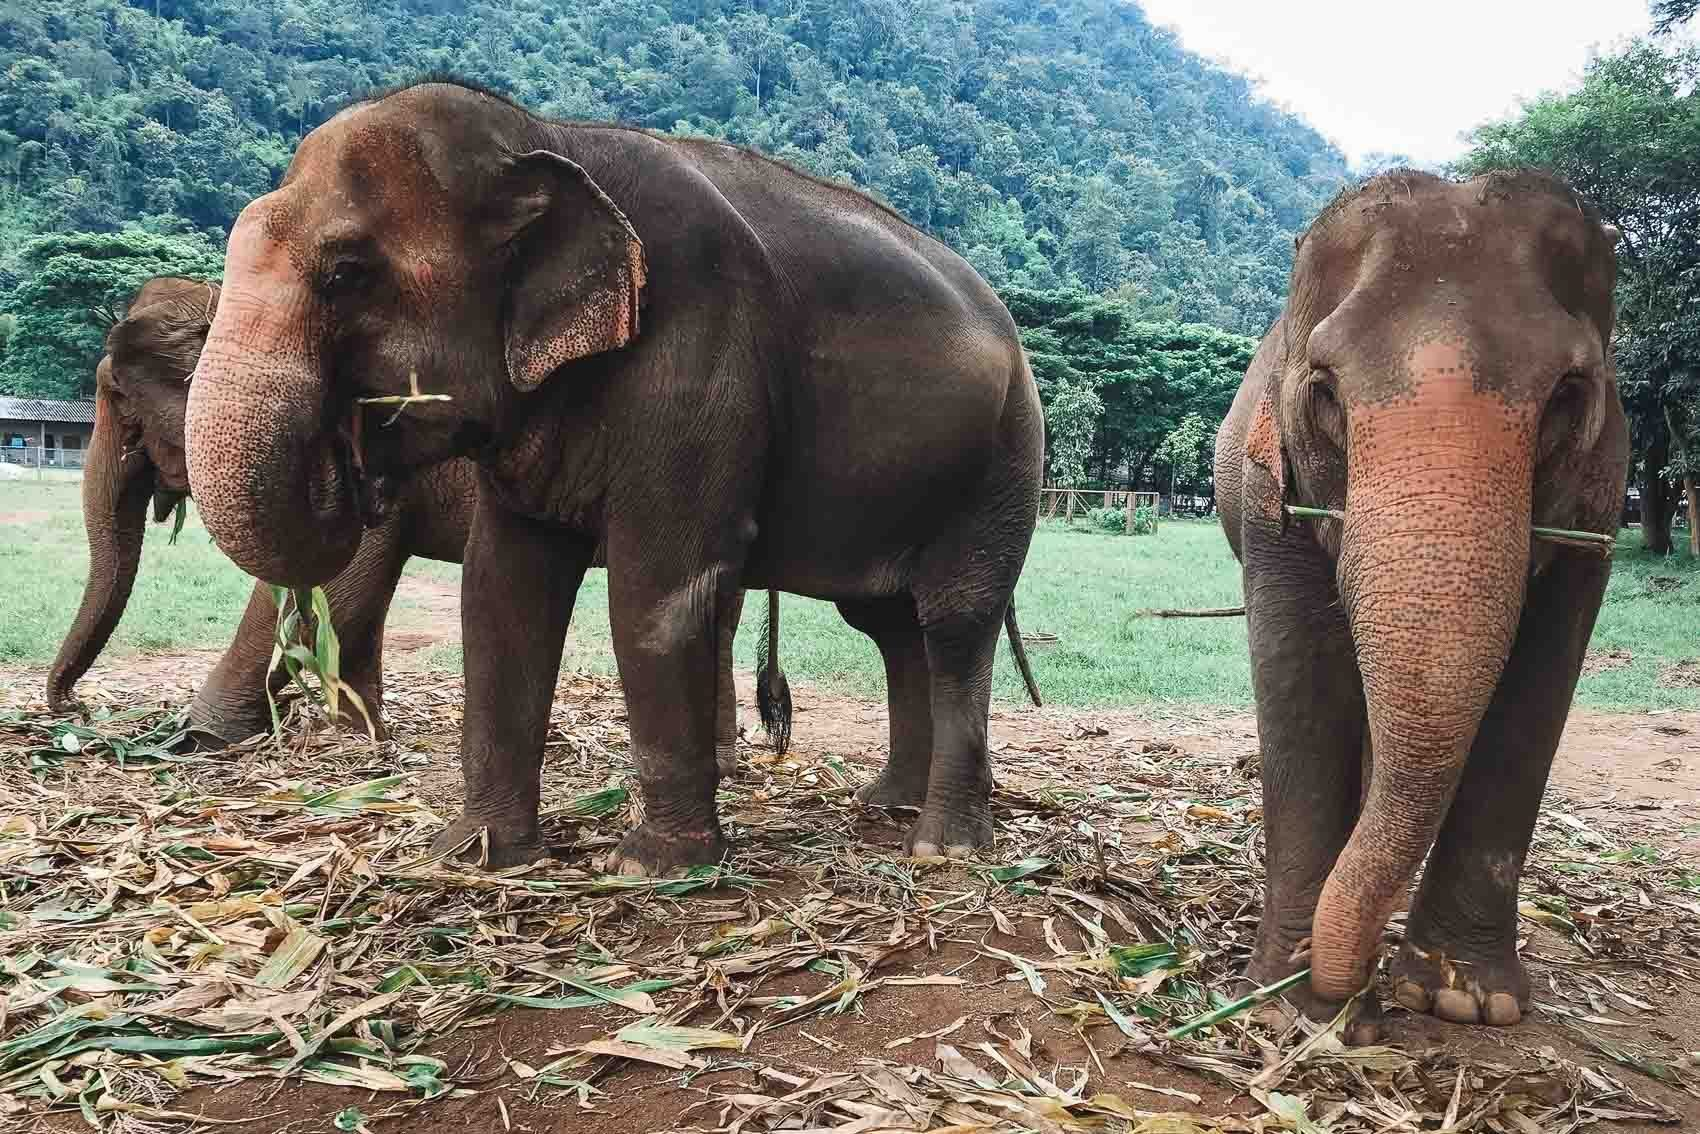 Three elephants eating at elephant nature park in Thailand